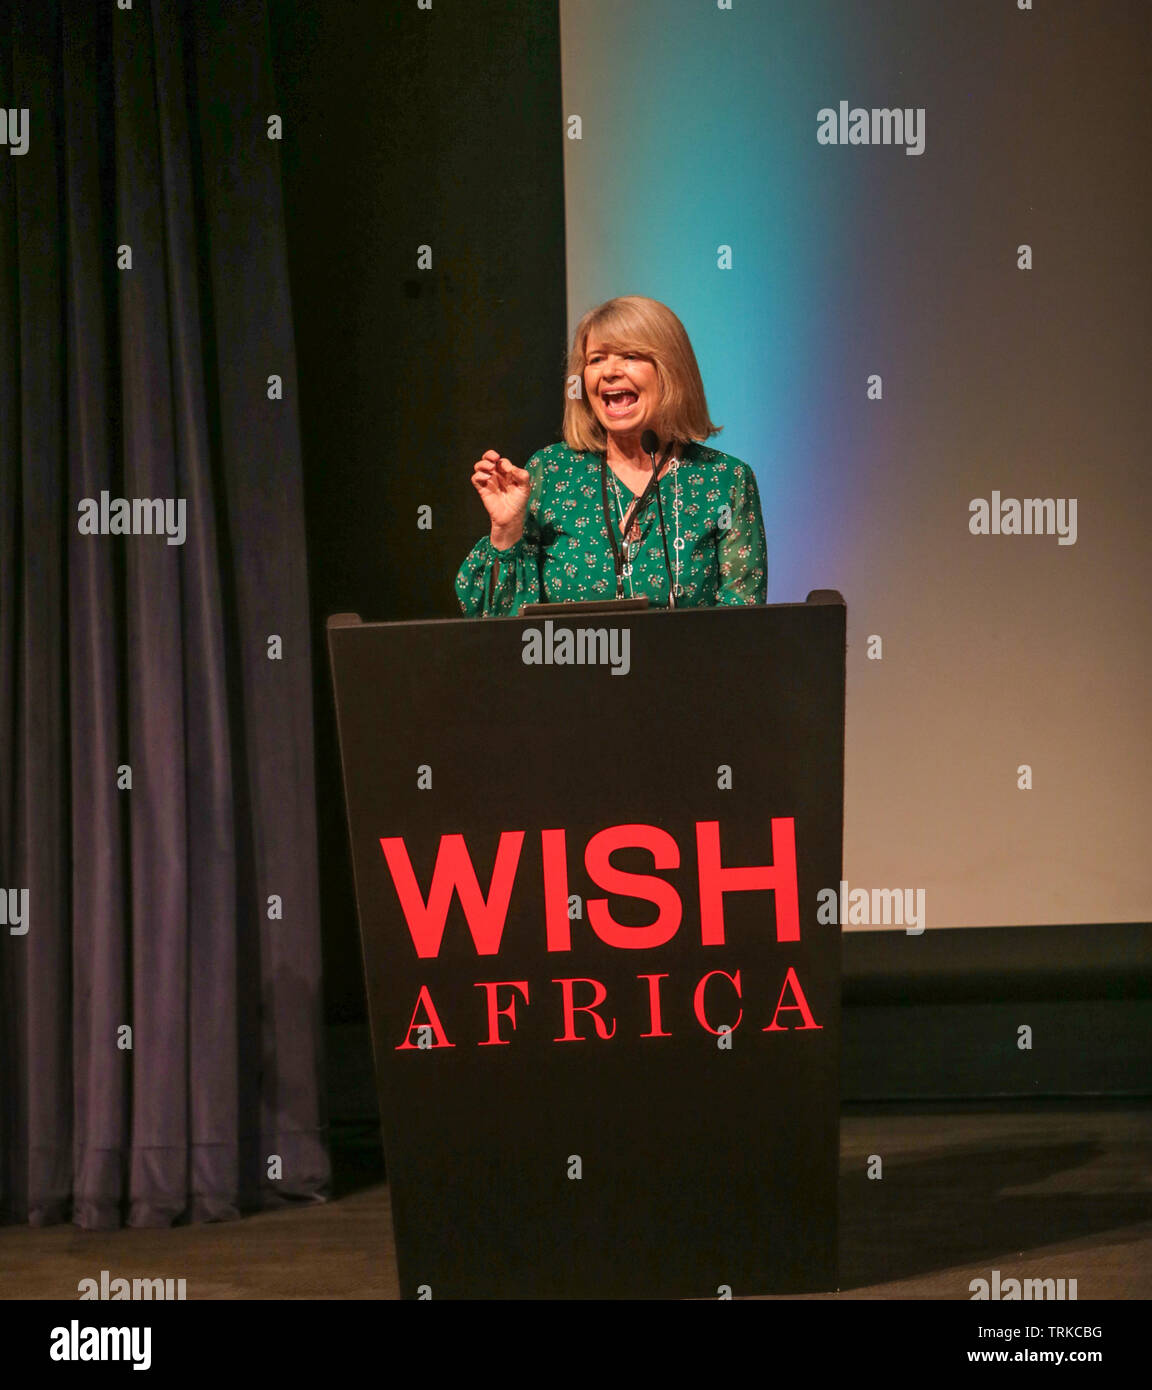 London, UK. 8th June 2019 Harriett Baldwin MP.  Appointed as Minister of State for Africa at the Foreign and Commonwealth Office and Minister of State at the Department for International Development on 9 January 2018. Opening the Wish Africa Expo in London Olympia , a two day, multi-industry conference showcasing the best of Africa in Architecture, Technology, Art, Fashion, Food and Drink as well as Travel.Paul Quezada-Neiman/Alamy Live News - Stock Image